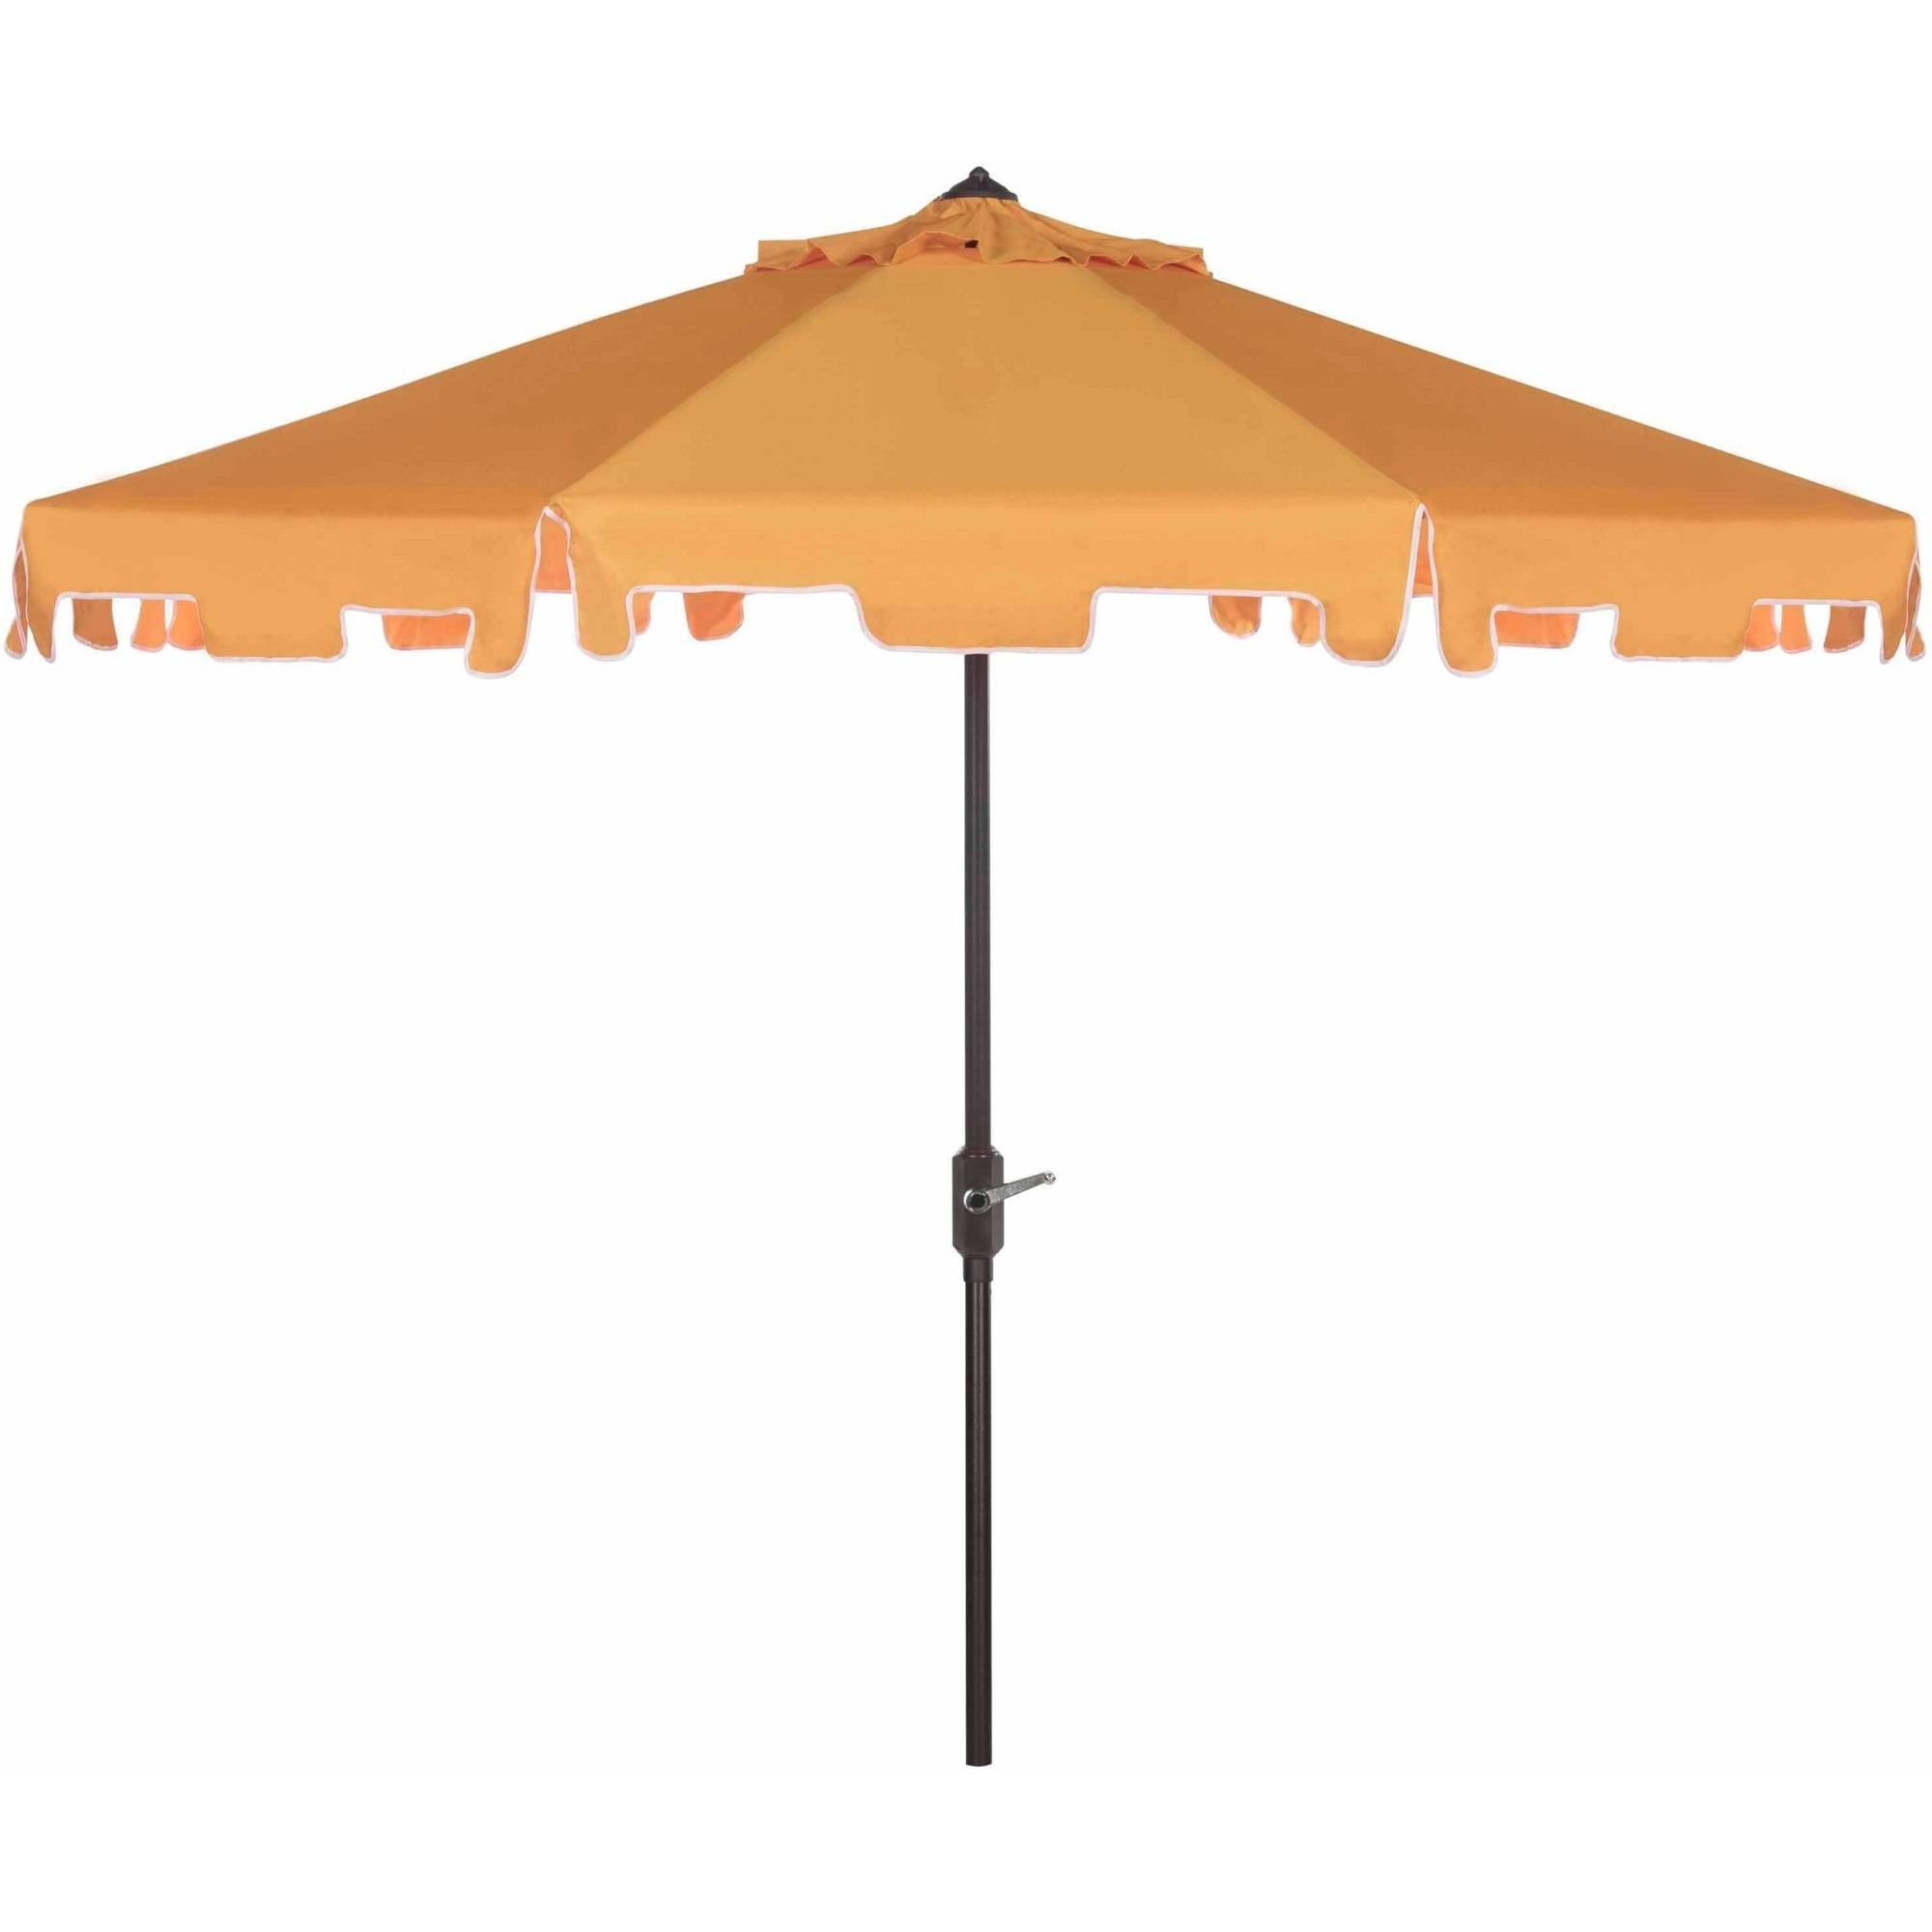 Safavieh Zimmerman Outdoor 9' Market Umbrella, Multiple Colors by Safavieh